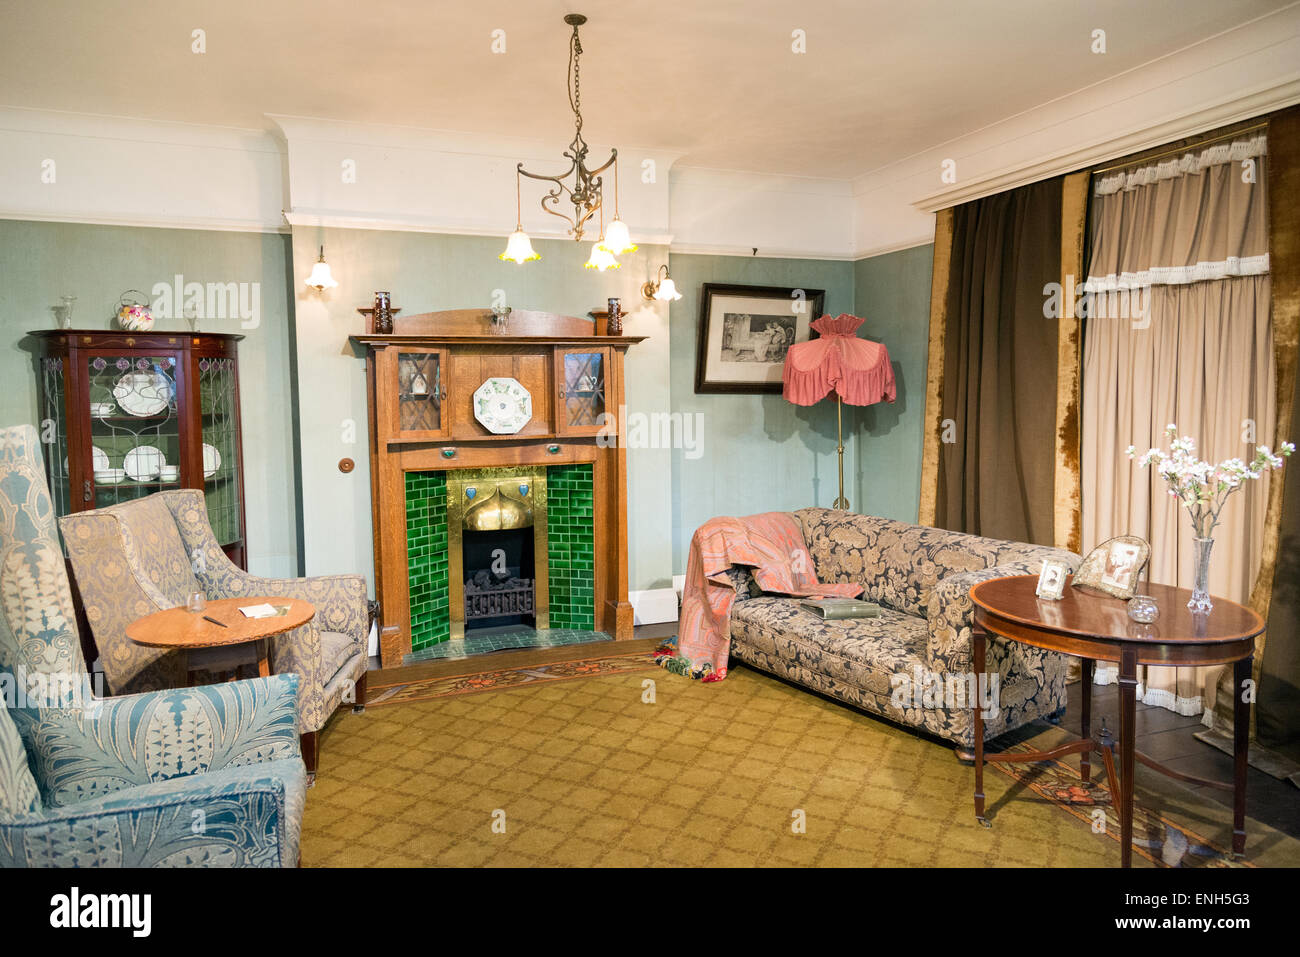 1900 1914 Edwardian Period Room In The Geffrye Museum Shoreditch London England